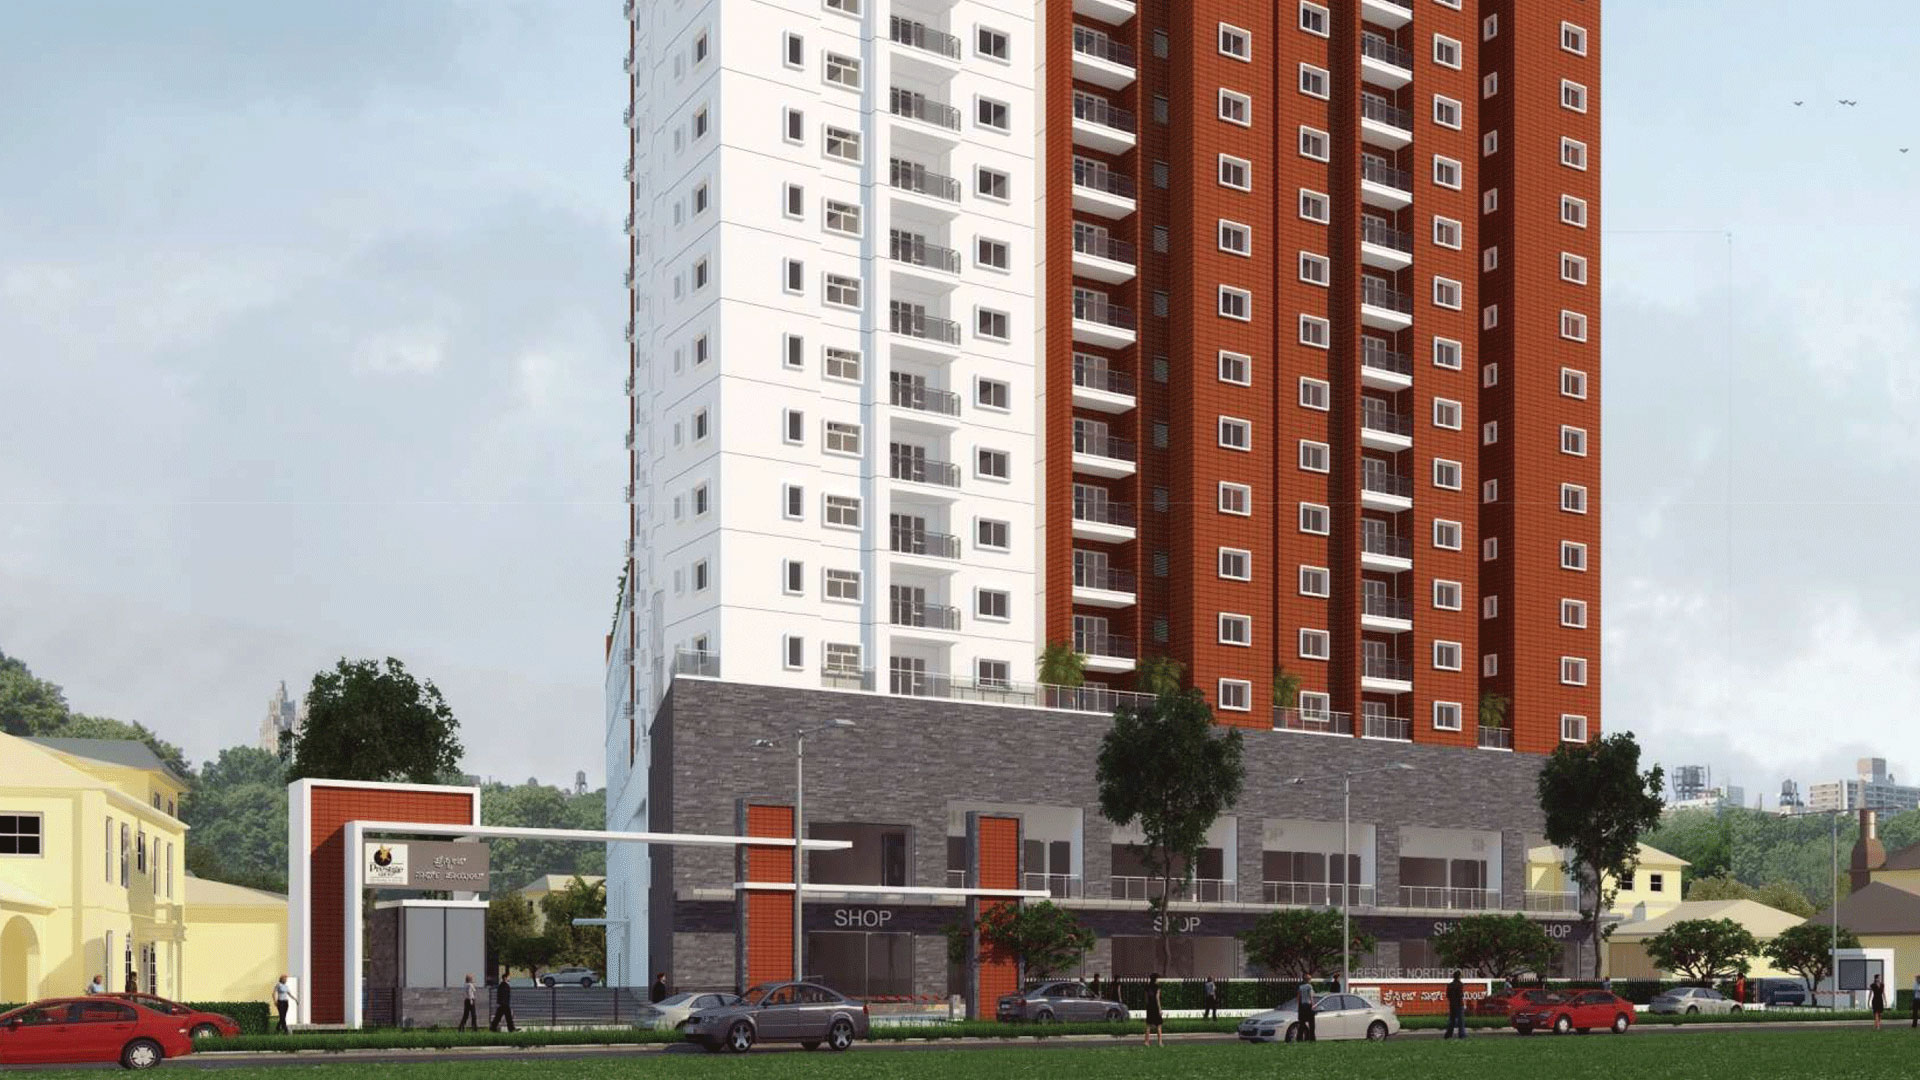 prestige-north-point-Apartment-in-Kommanahall-Bangalore-Image-01